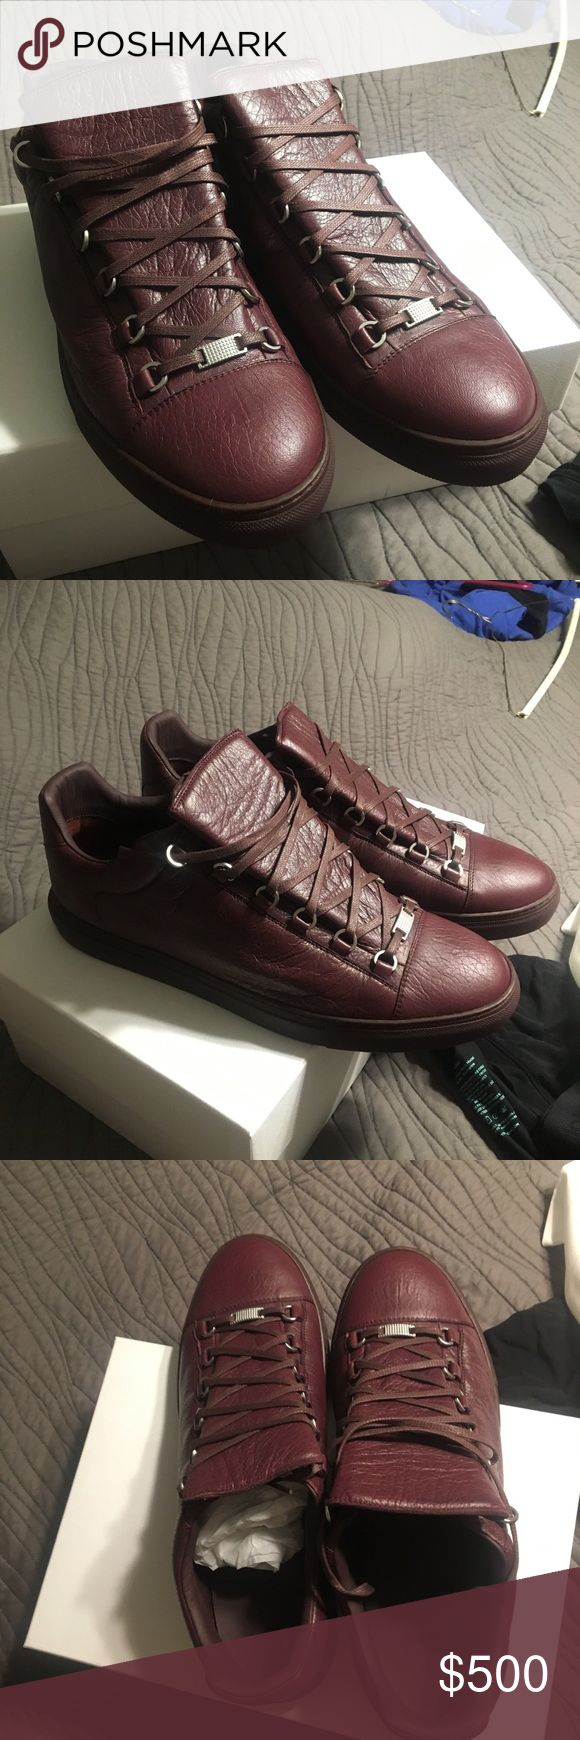 Balenciaga Arena Low size 47 Brand new deadstock arena sneaker from Balenciaga size 47 in Rouge Bourgogne Leather Balenciaga Shoes Sneakers